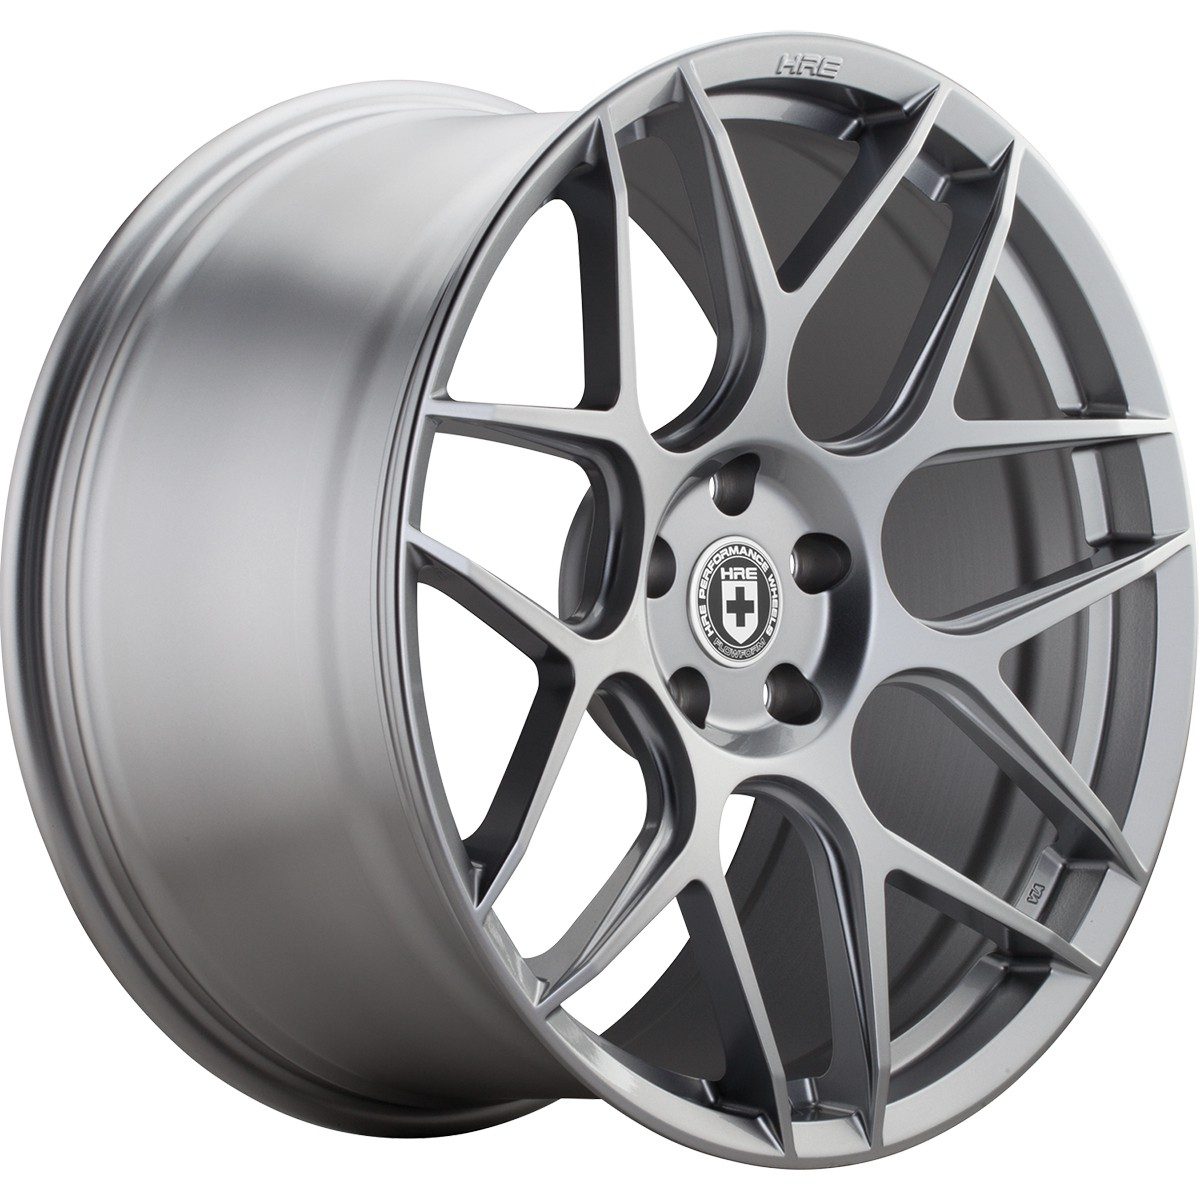 HRE FlowForm FF01 Wheels | Liquid Silver | Audi/Volkswagen 5x112 Bolt Pattern with 57.1mm Center Bore